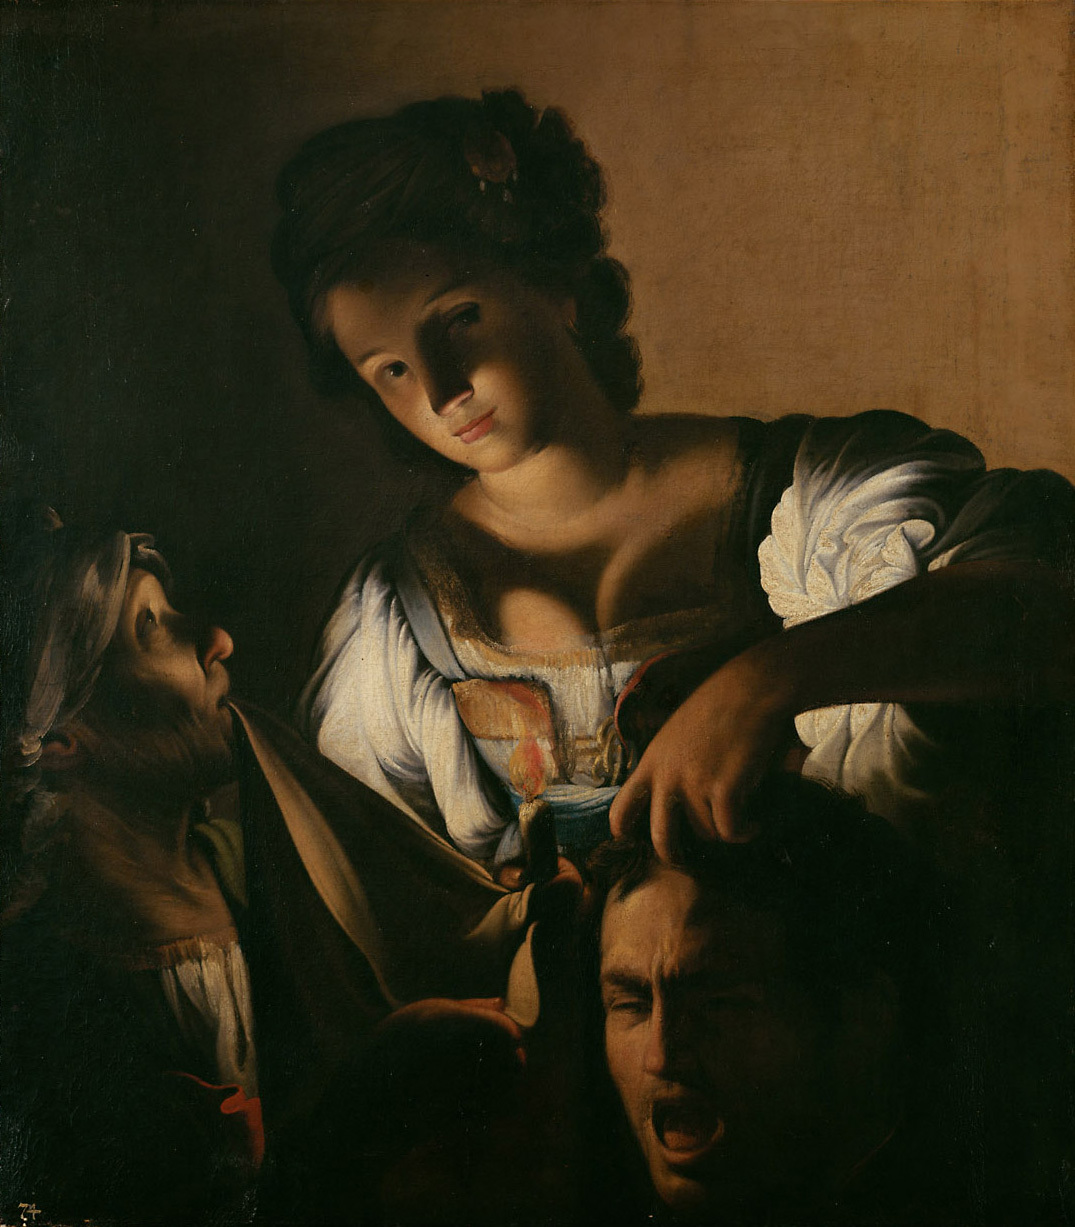 1000+ images about Judith on Pinterest | The head, Oil on ...